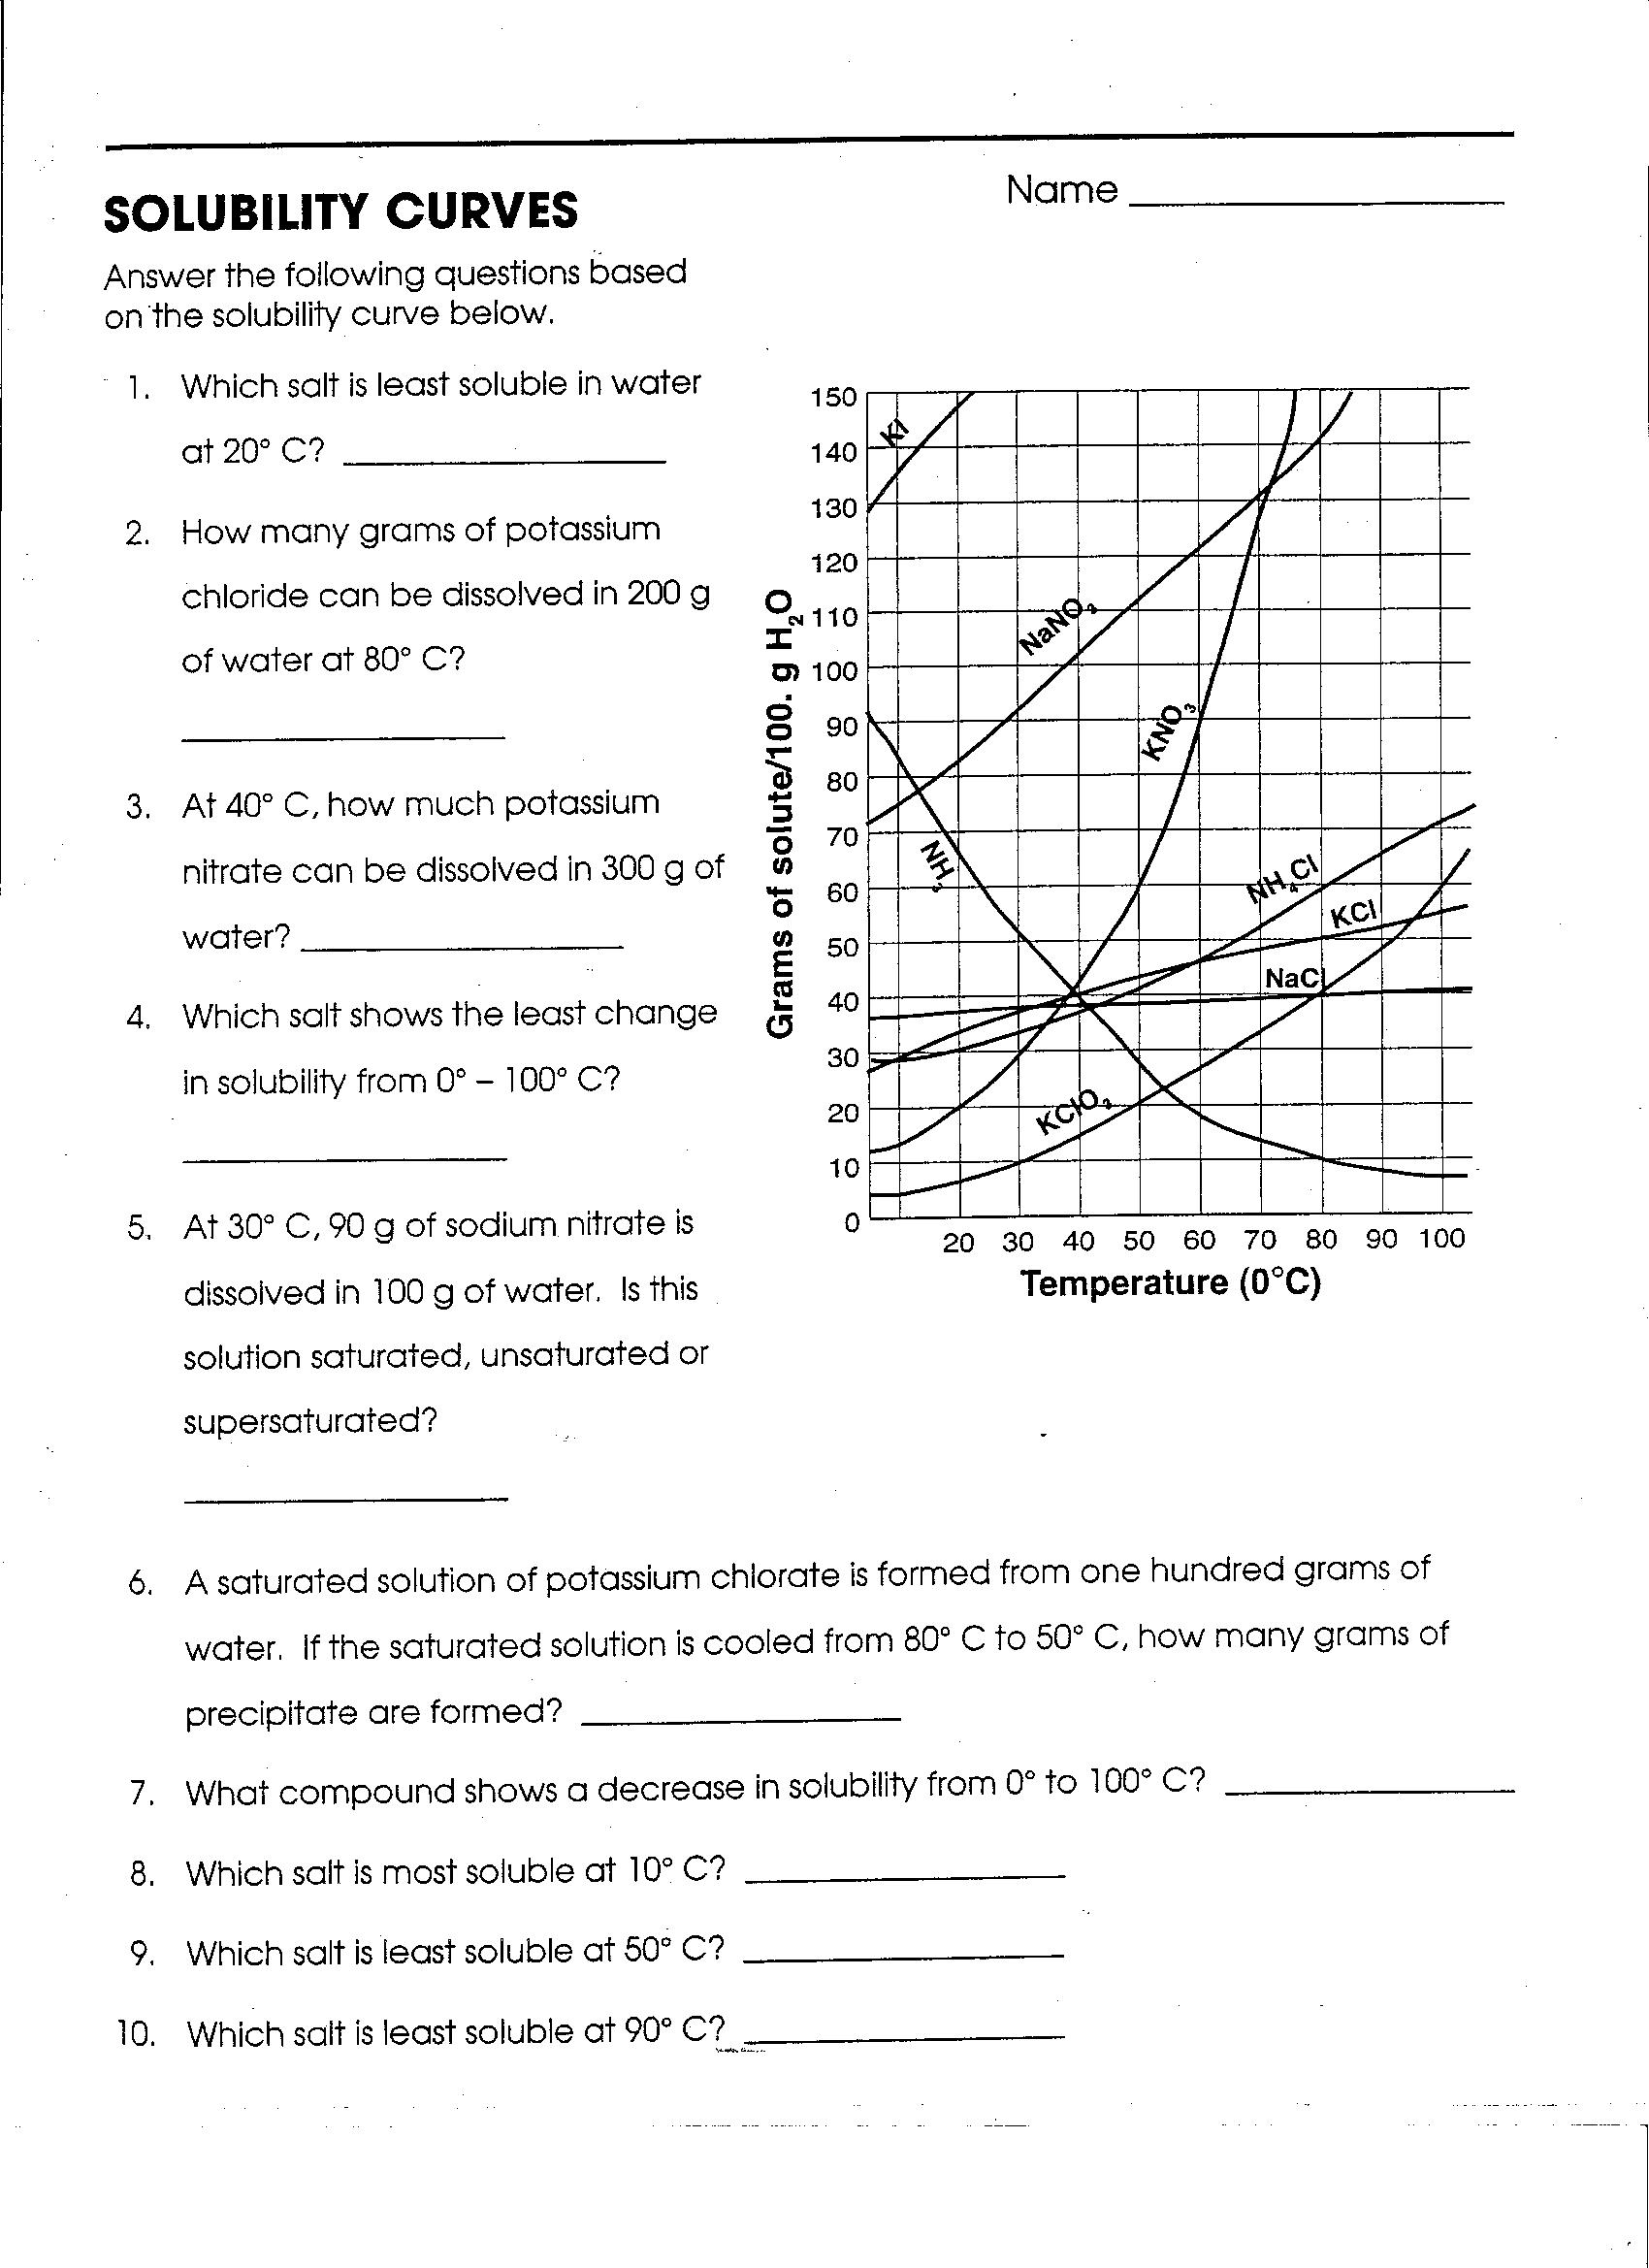 absolute dating worksheet Relative and absolute dating - duration: 5:34 fulmerscience 28,104 views 5:34 relative and absolute dating pp.